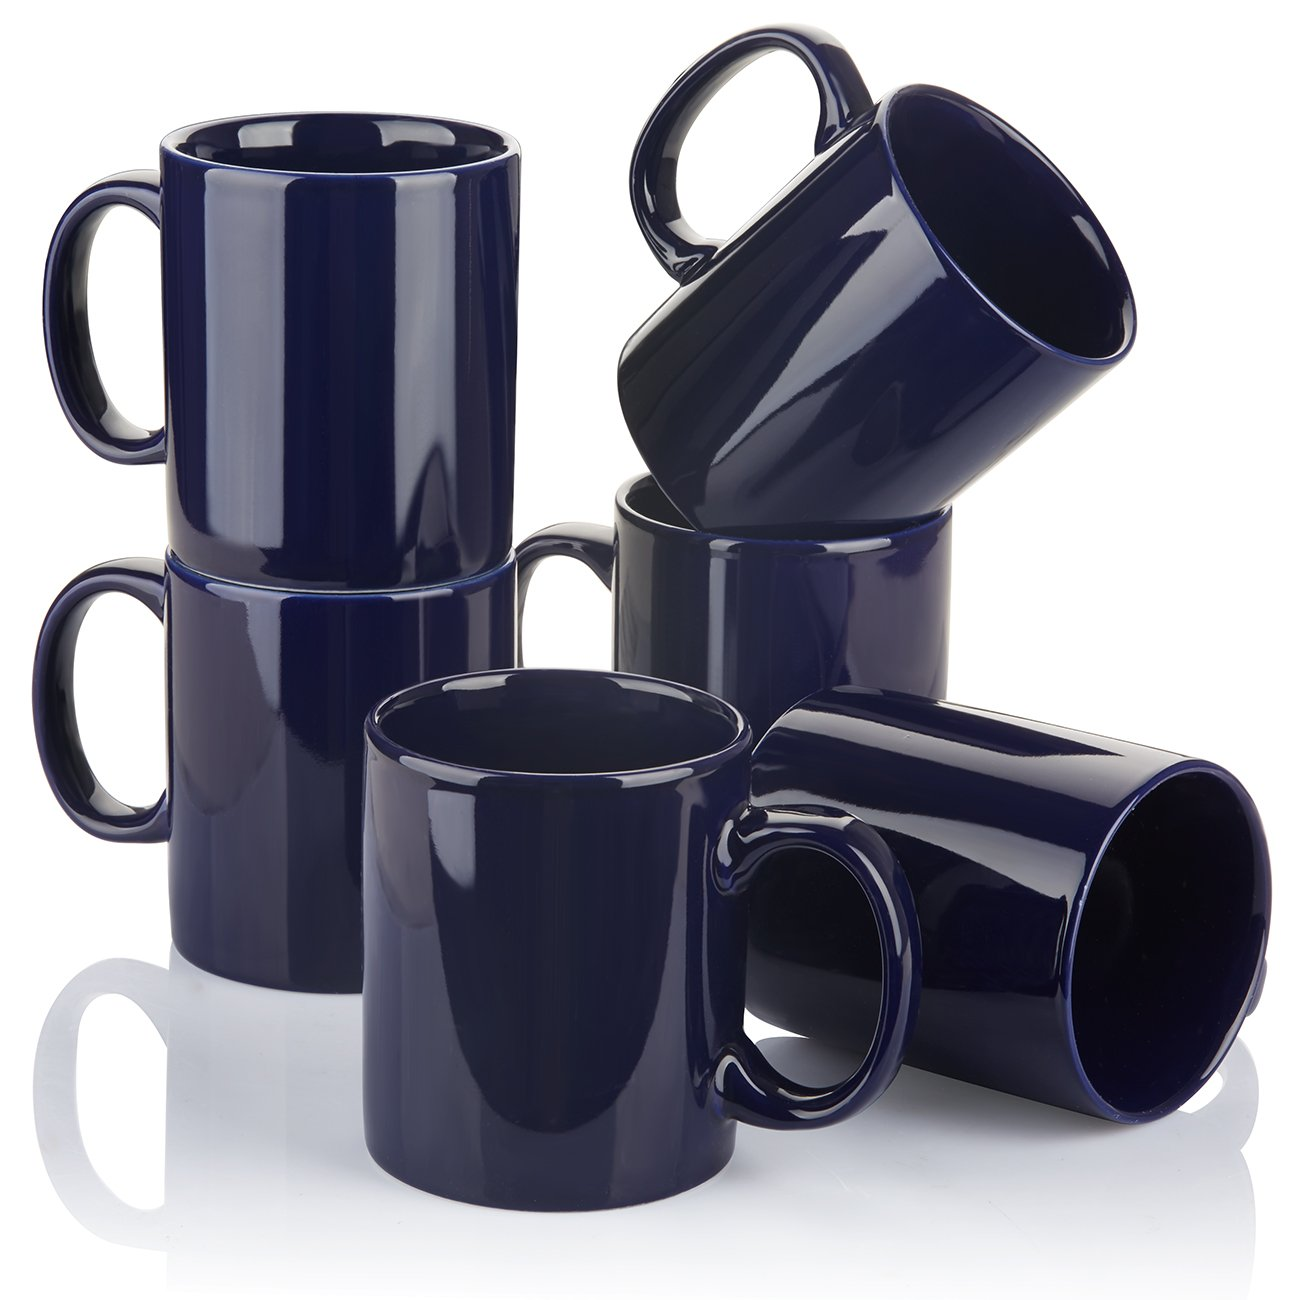 YHY Coffee Mug Set Porcelain Coffee Cups - 12OZ for Coffee Drinks, Latte, Cafe Espresso Tea - Set of 6, Navy Blue